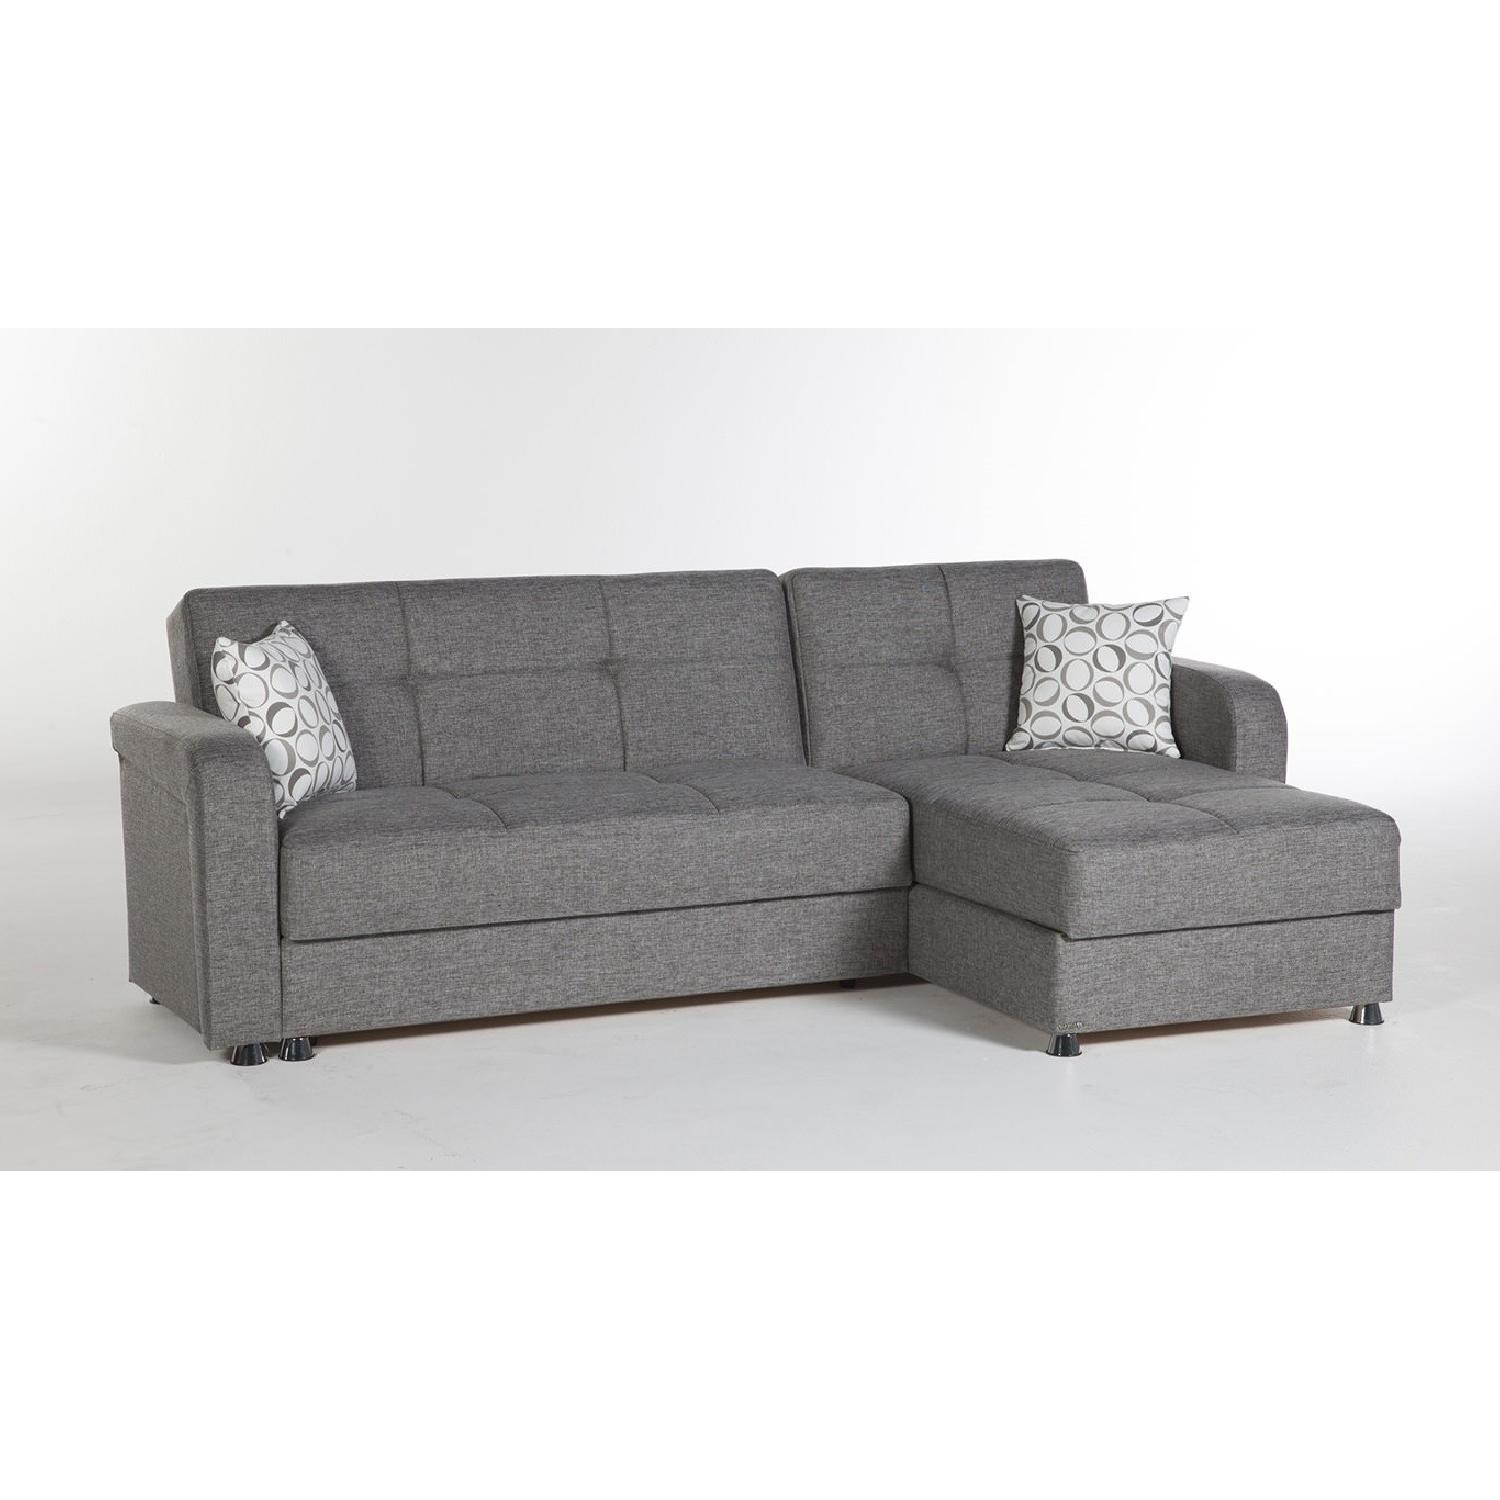 ashley steel concepts of pinterest sofas furniture in pictures sectional sofa luxury doralin gray grobania